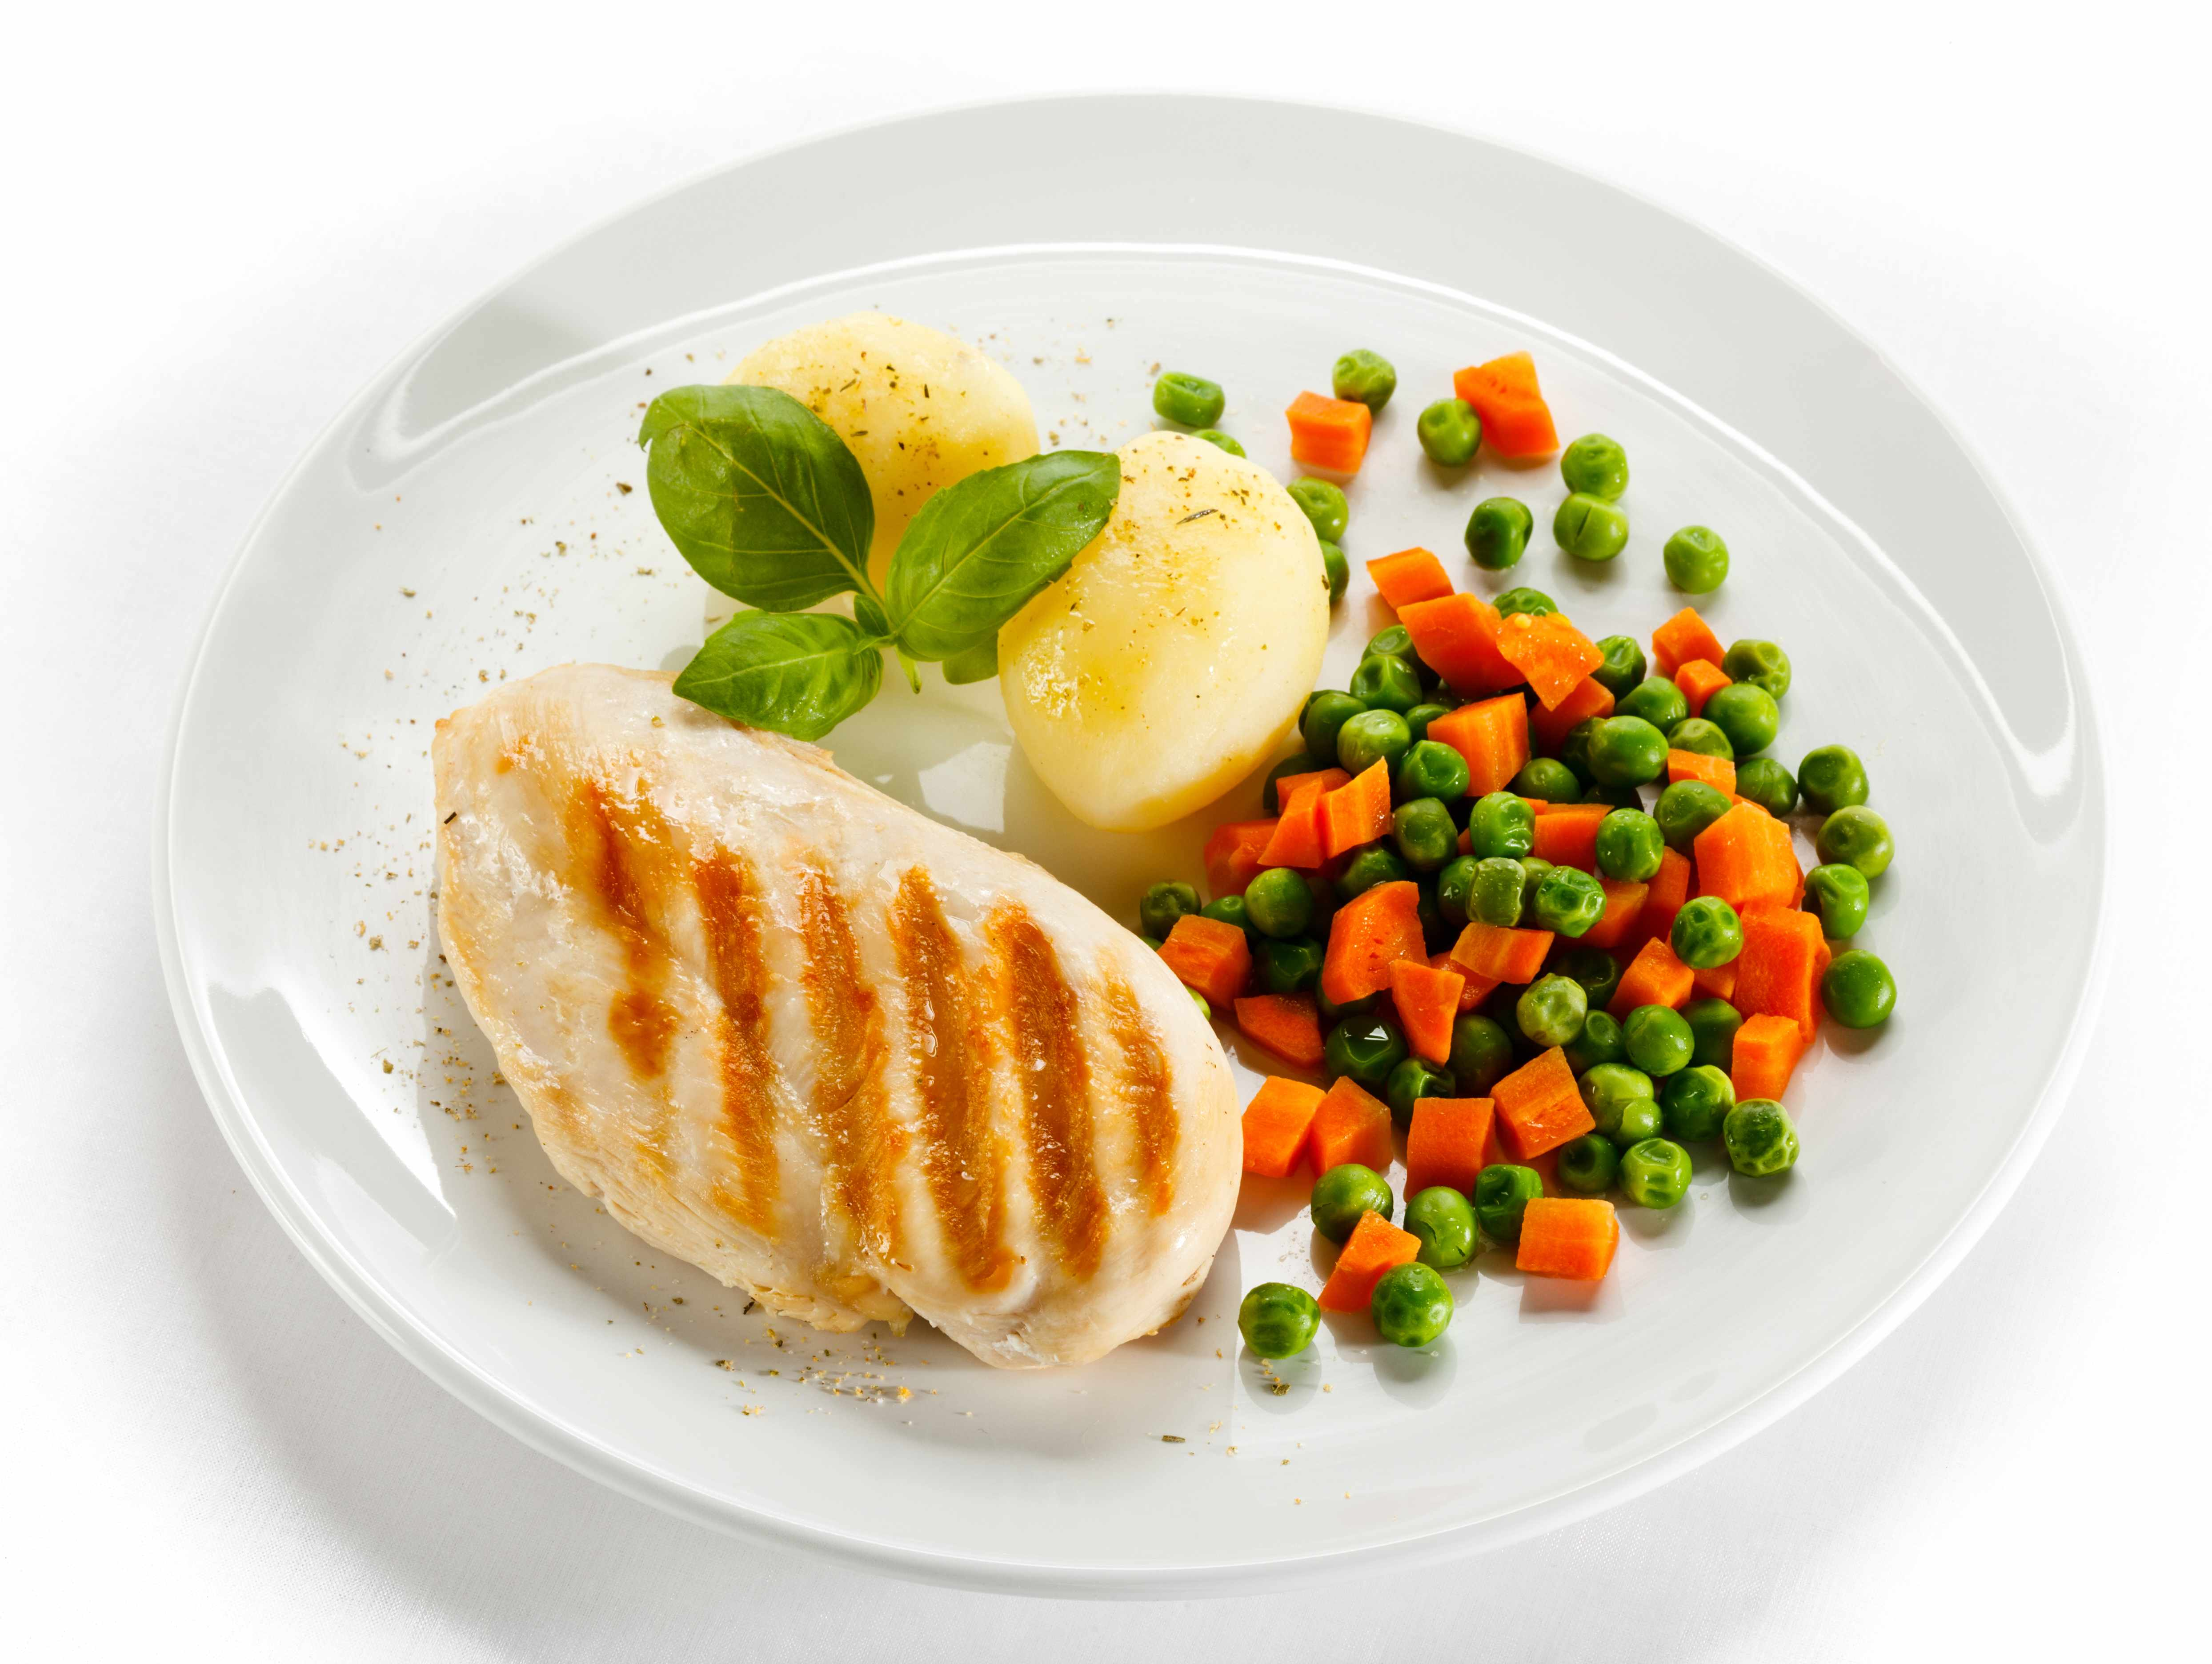 a plate of chicken and vegetables, illustrating portion control